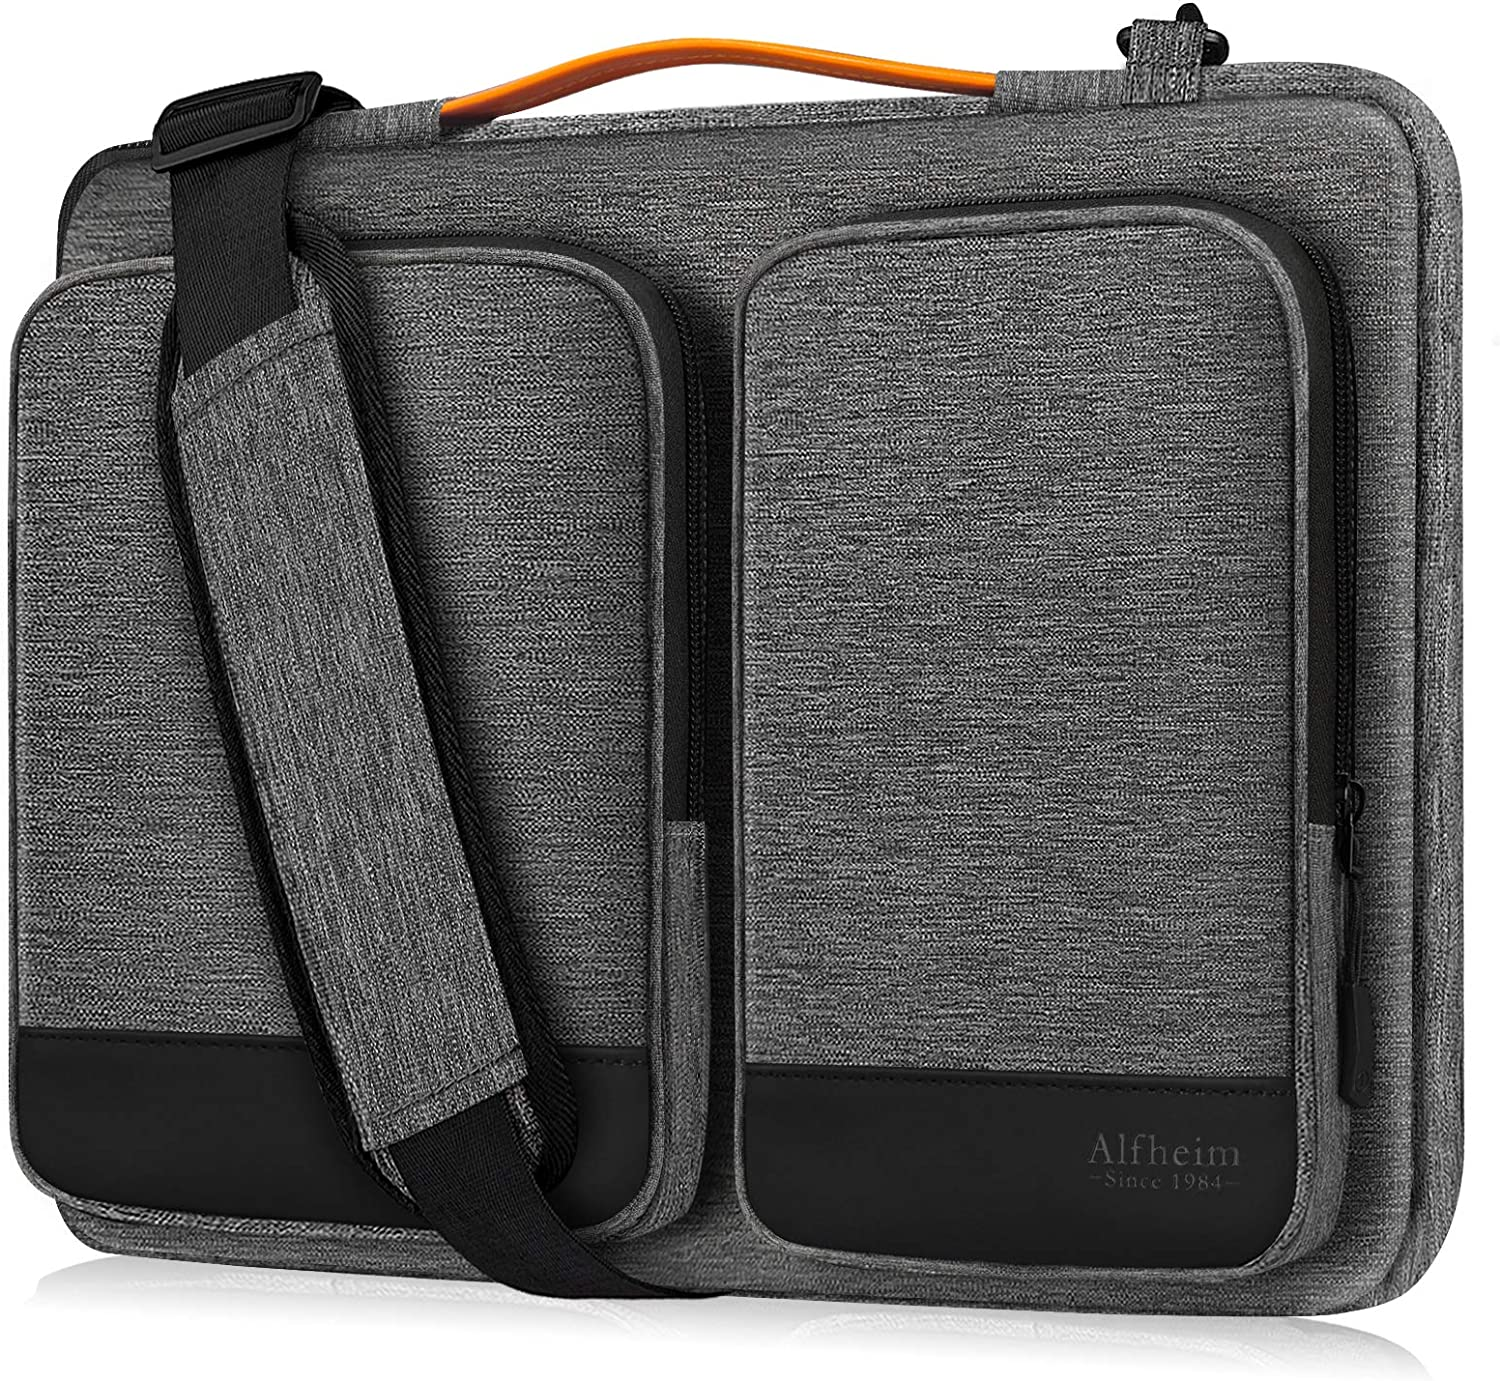 Alfheim 14 inch Laptop Case Waterproof L Weekly update Sleeve Shock-Resistant Our shop OFFers the best service